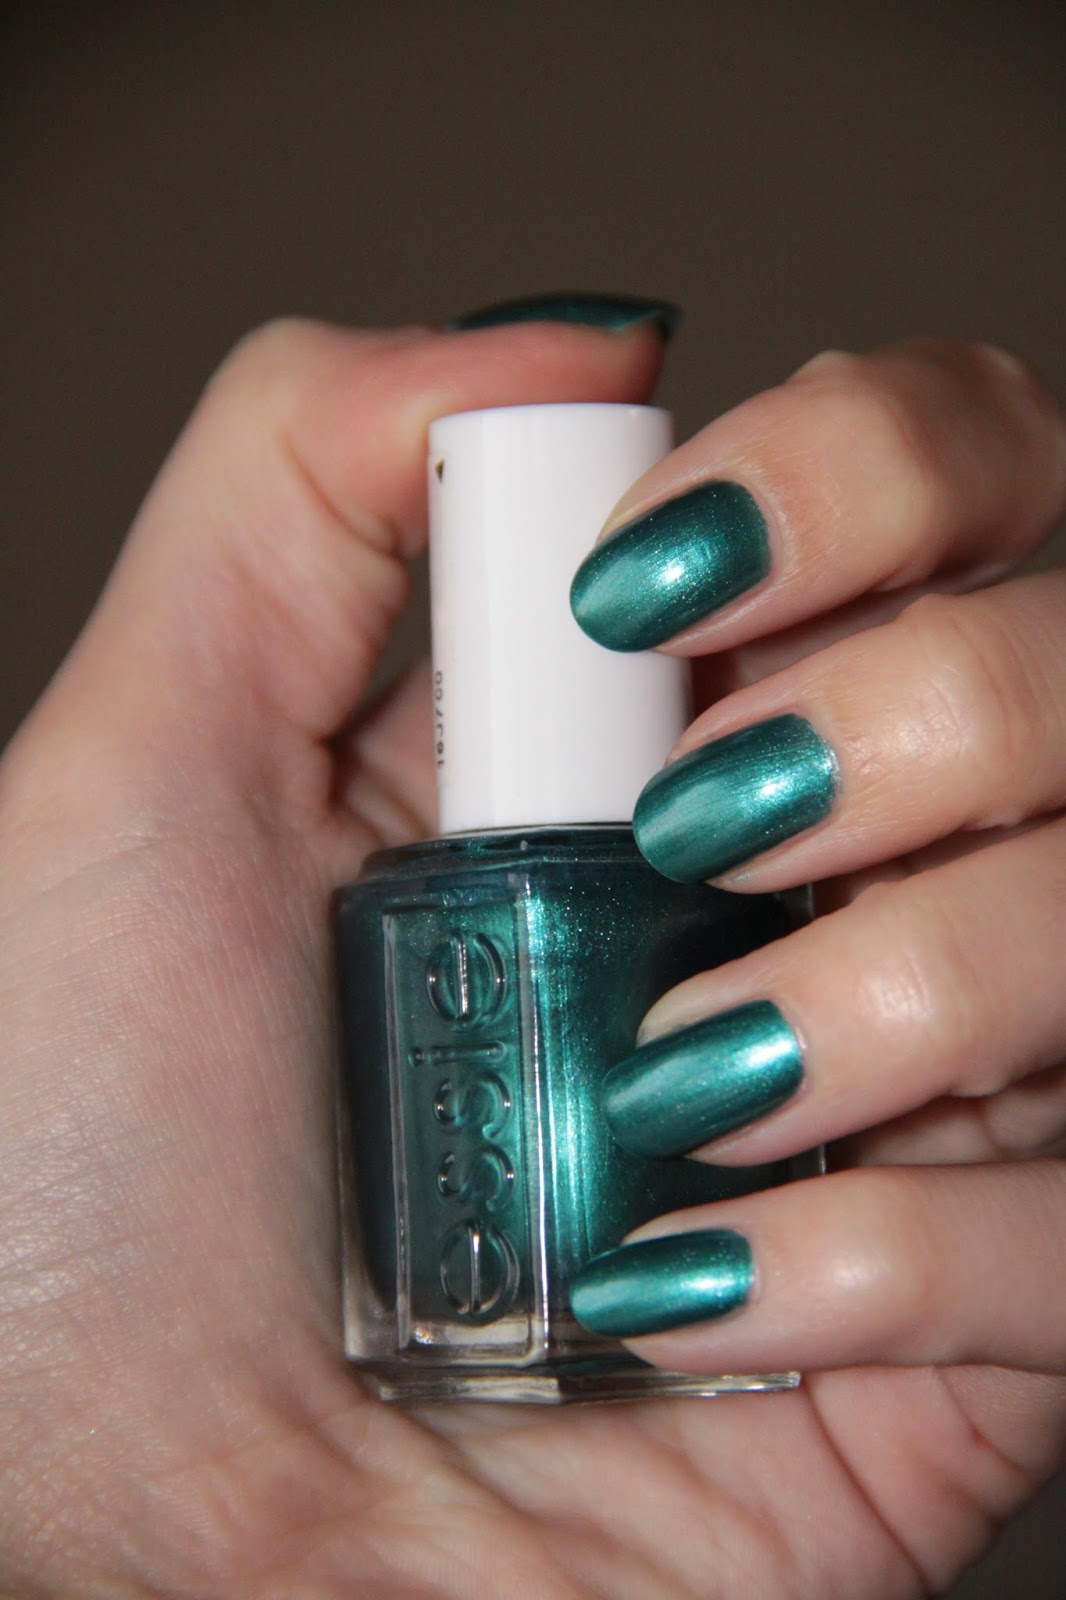 Vernis Essie bleu vert turquoise, Trophy Wife, nail art dotting tool